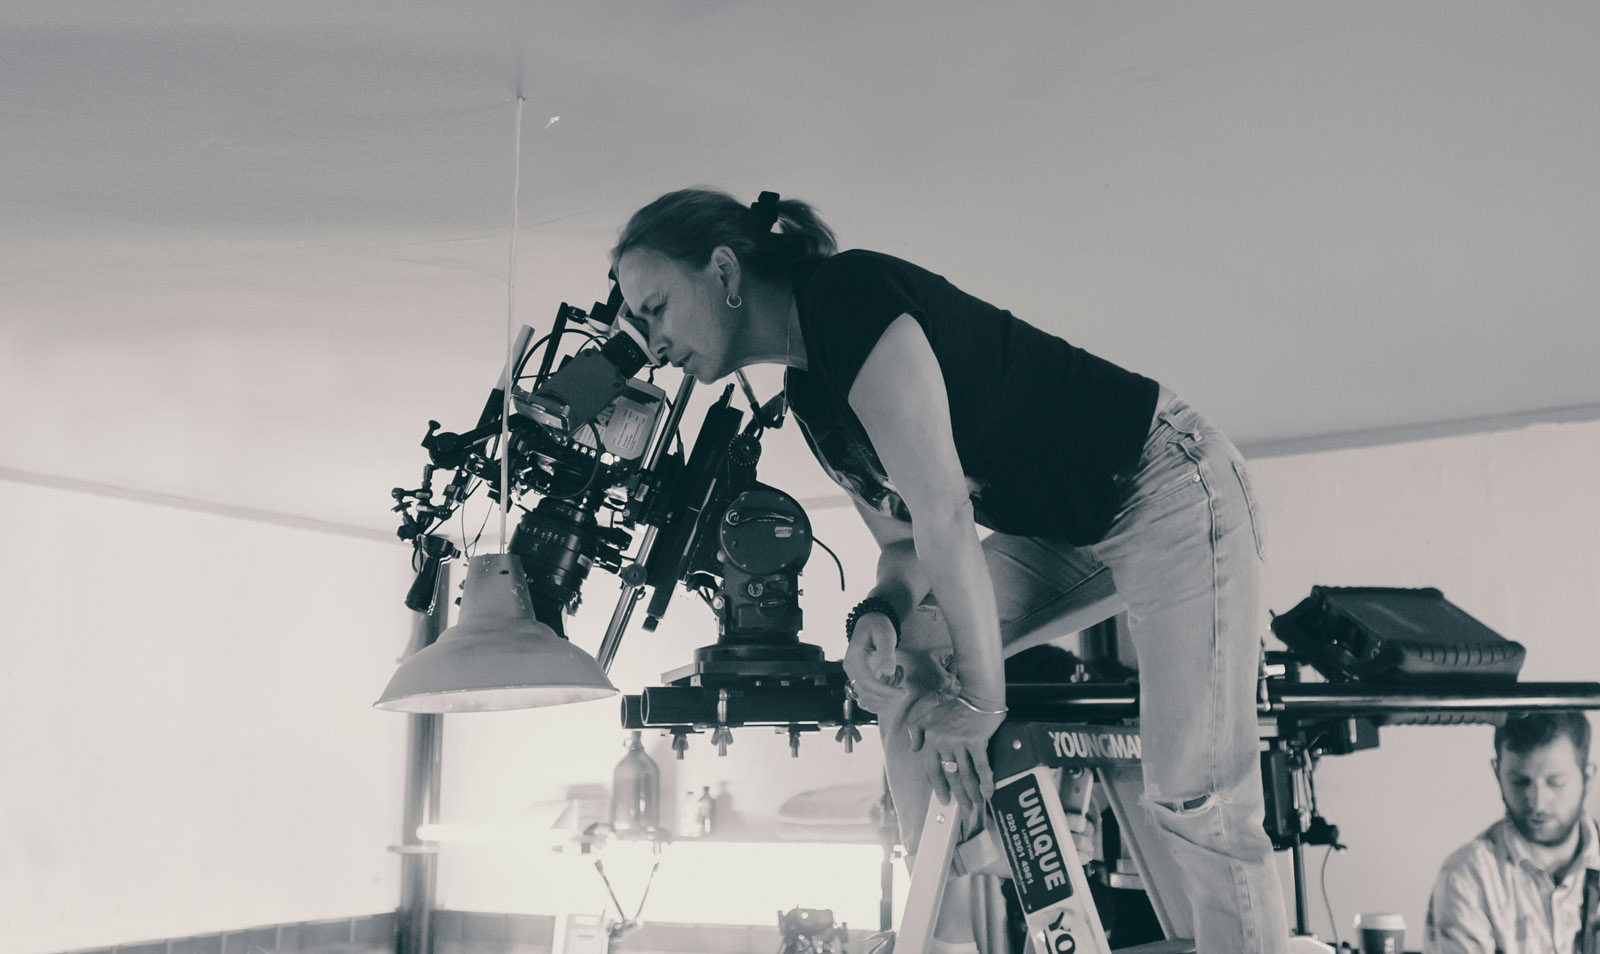 Cinematographer Oona Menges - Behind the scenes - Amsterdam, BW - photo credit Ashley Kingsbury